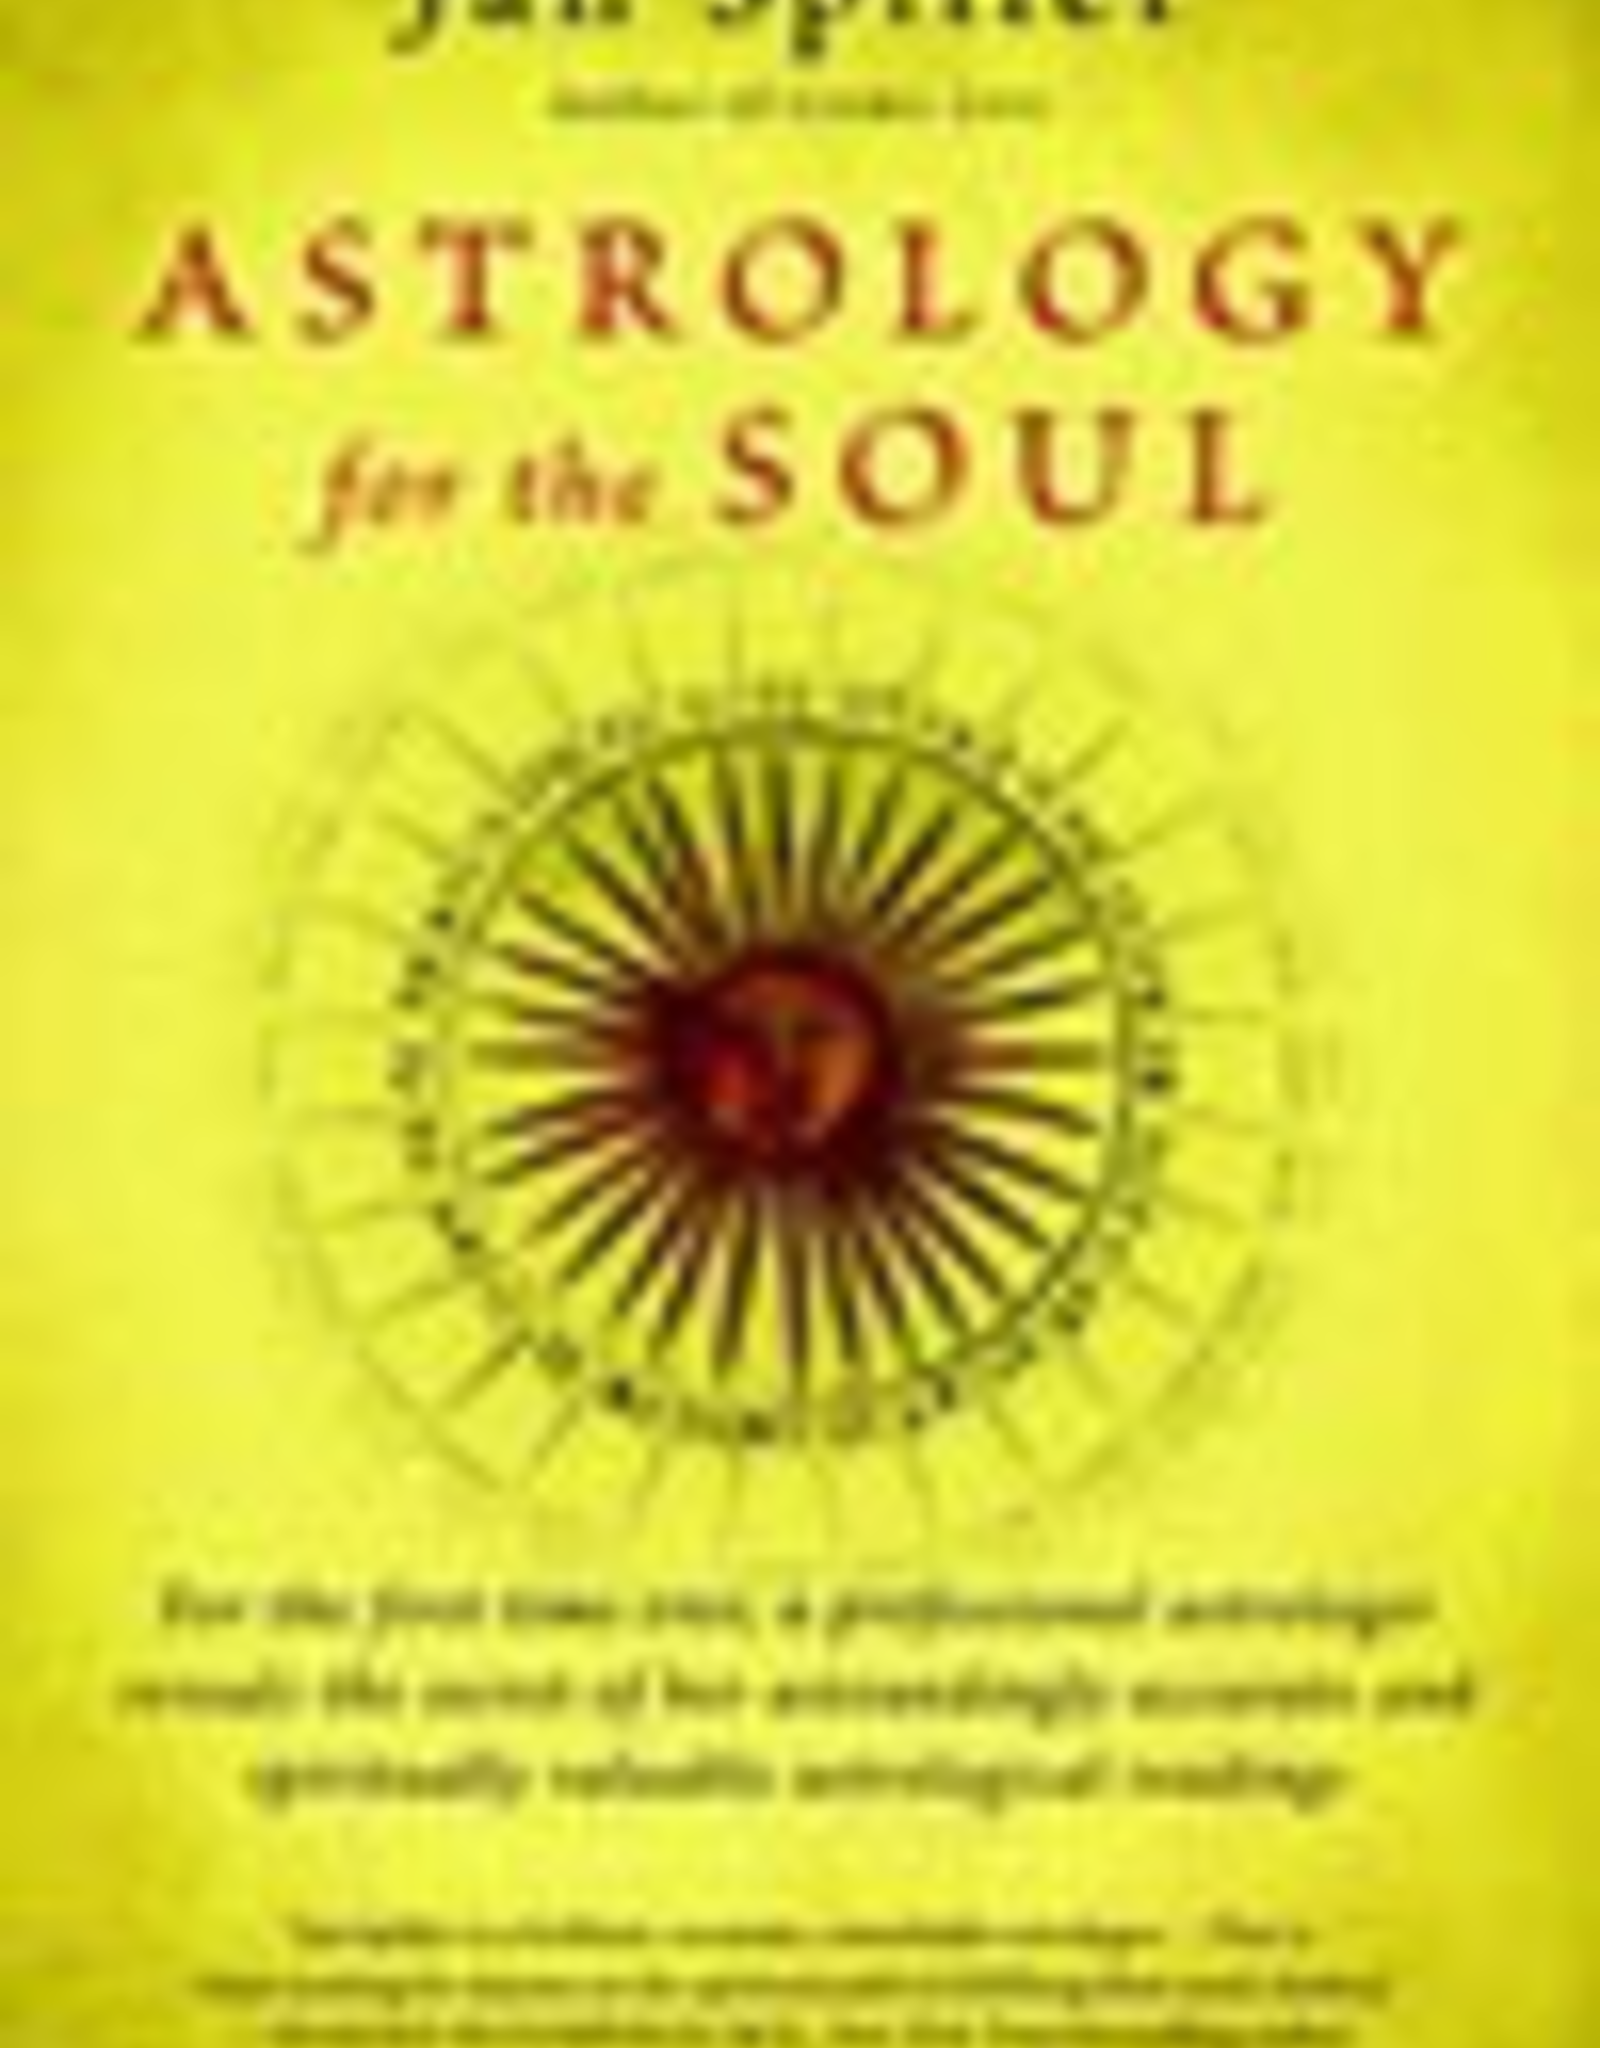 Astrology for the Soul